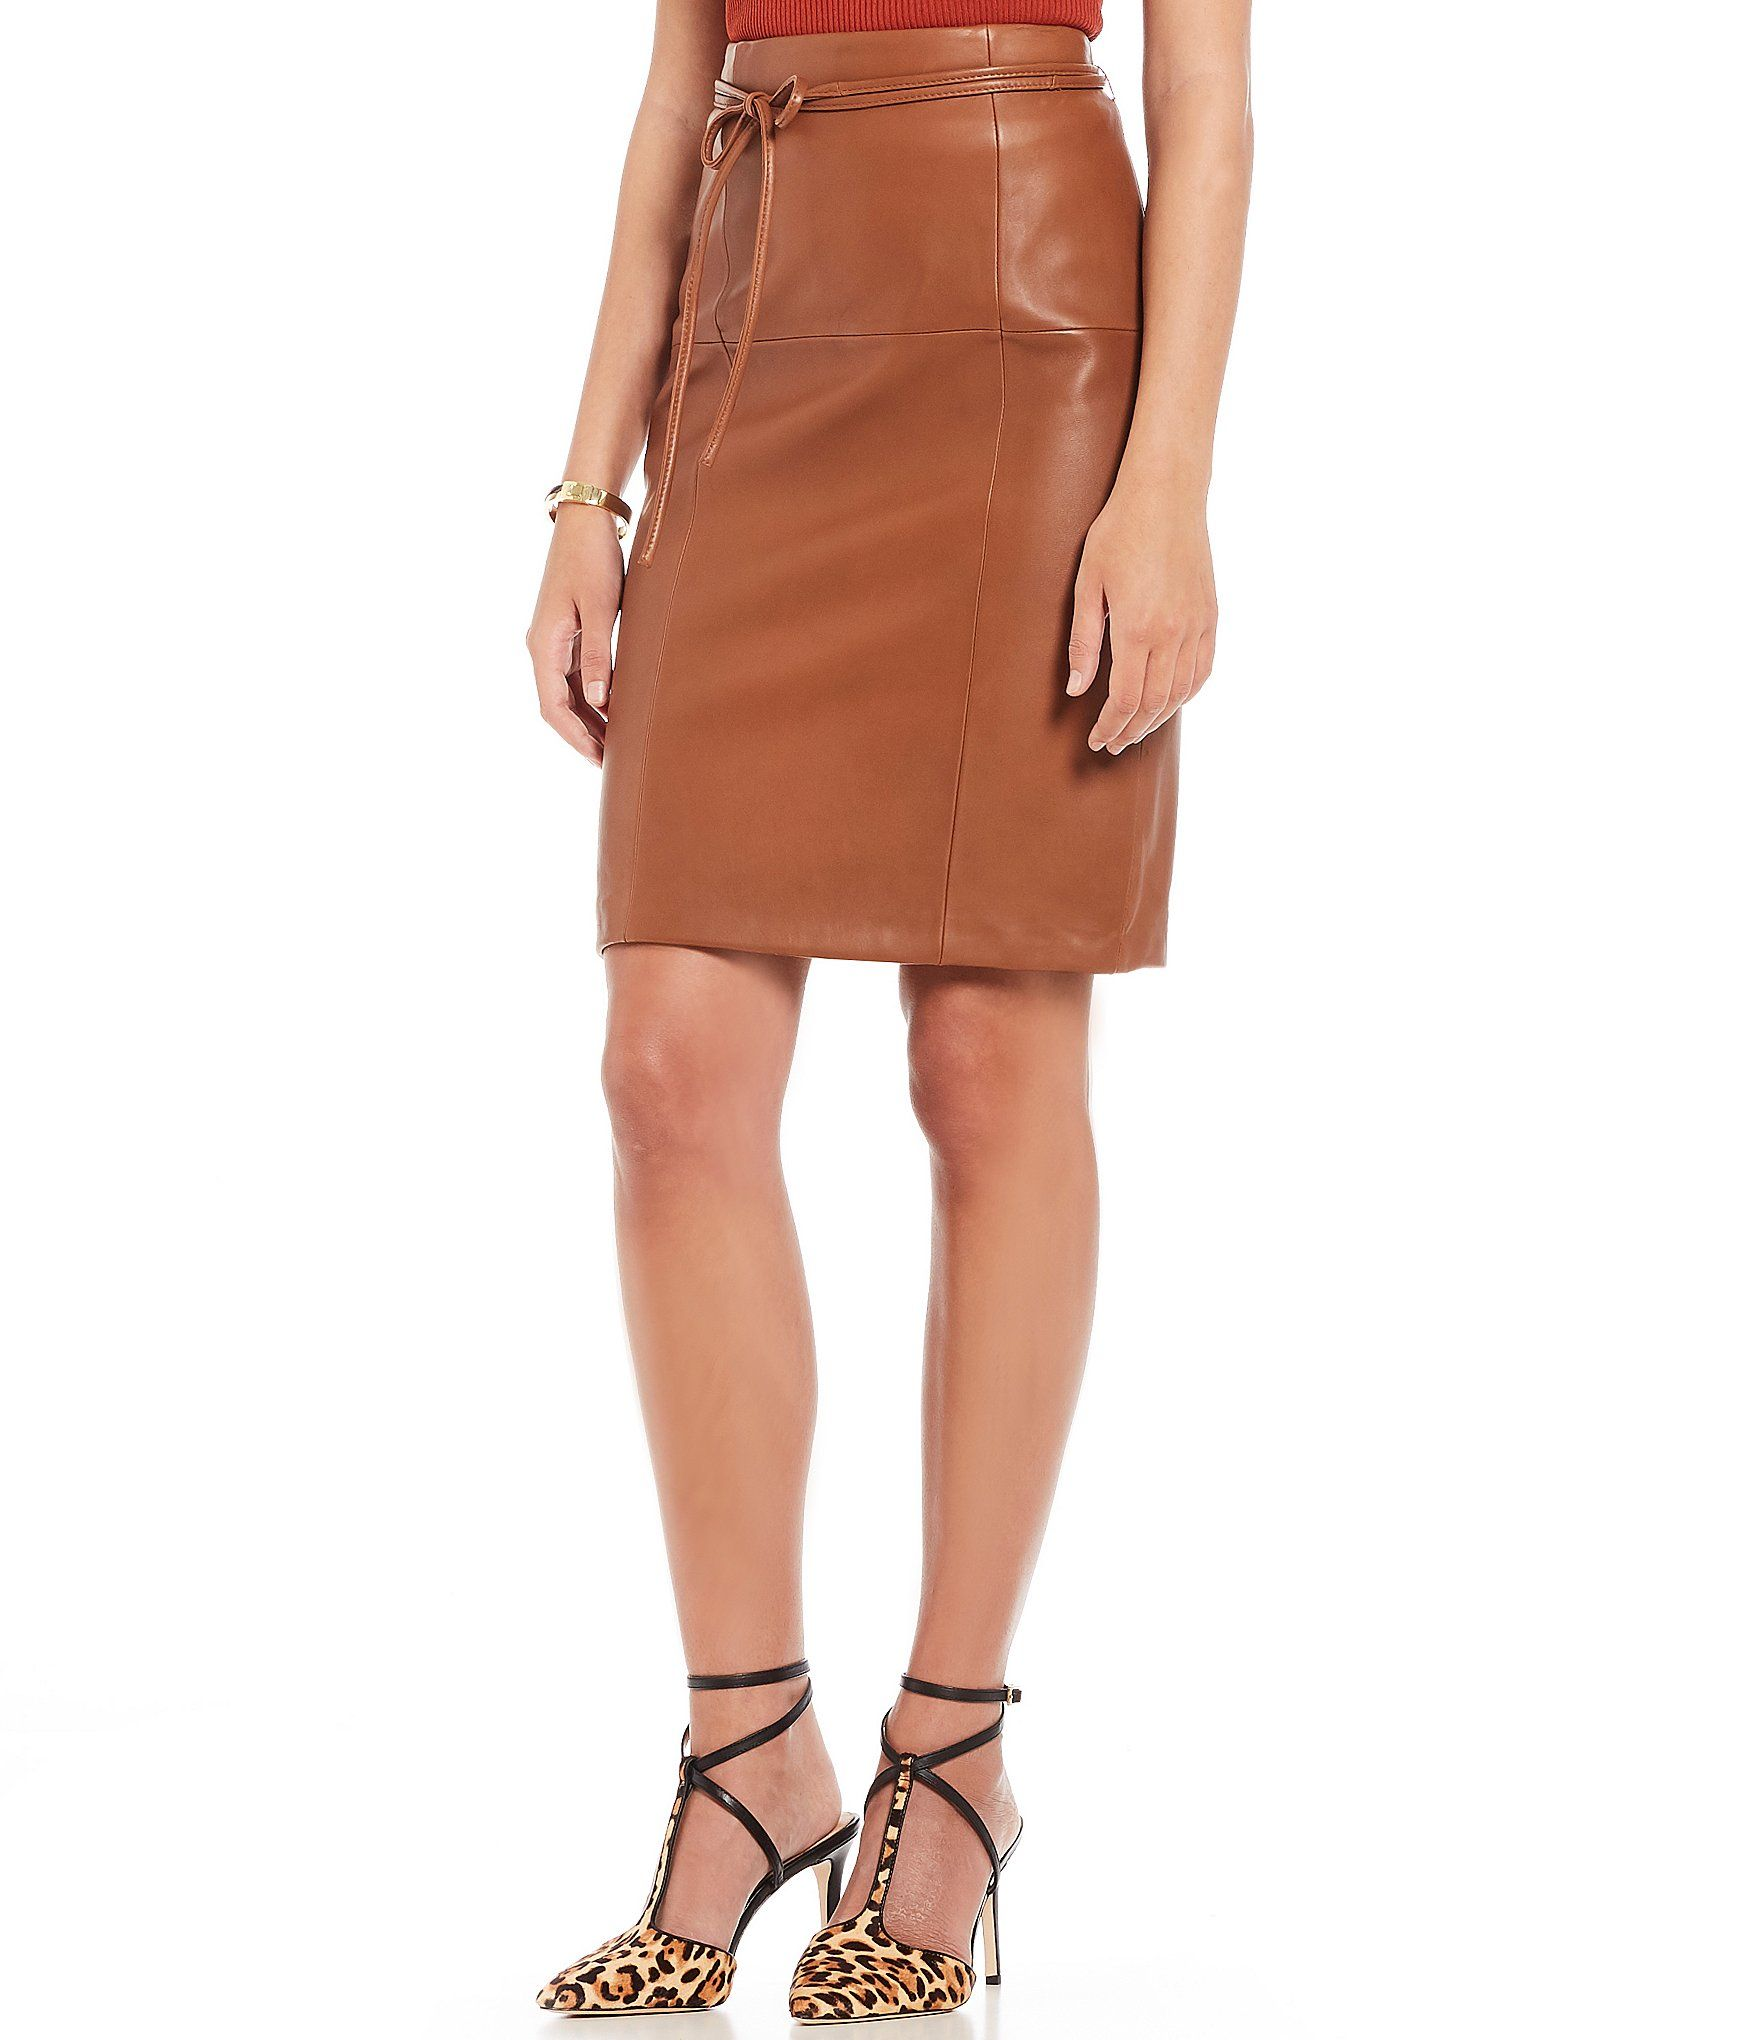 e67fafadb Shop for Antonio Melani Luxury Collection Leather Aria Skirt at  Dillards.com. Visit Dillards.com to find clothing, accessories, shoes,  cosmetics & more.